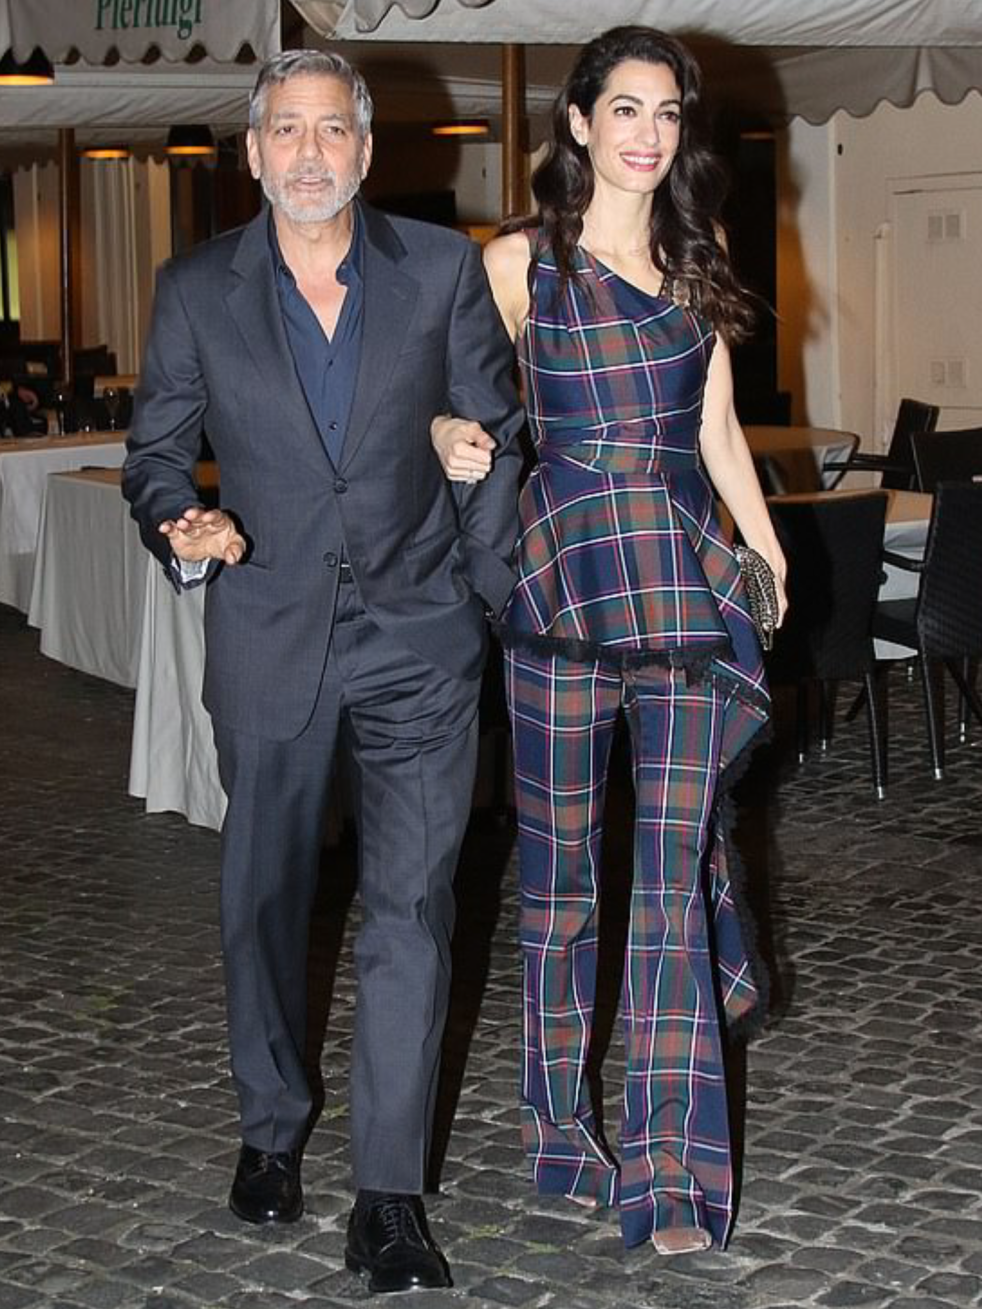 Amal Clooney Style – A blog about Amal's news & style